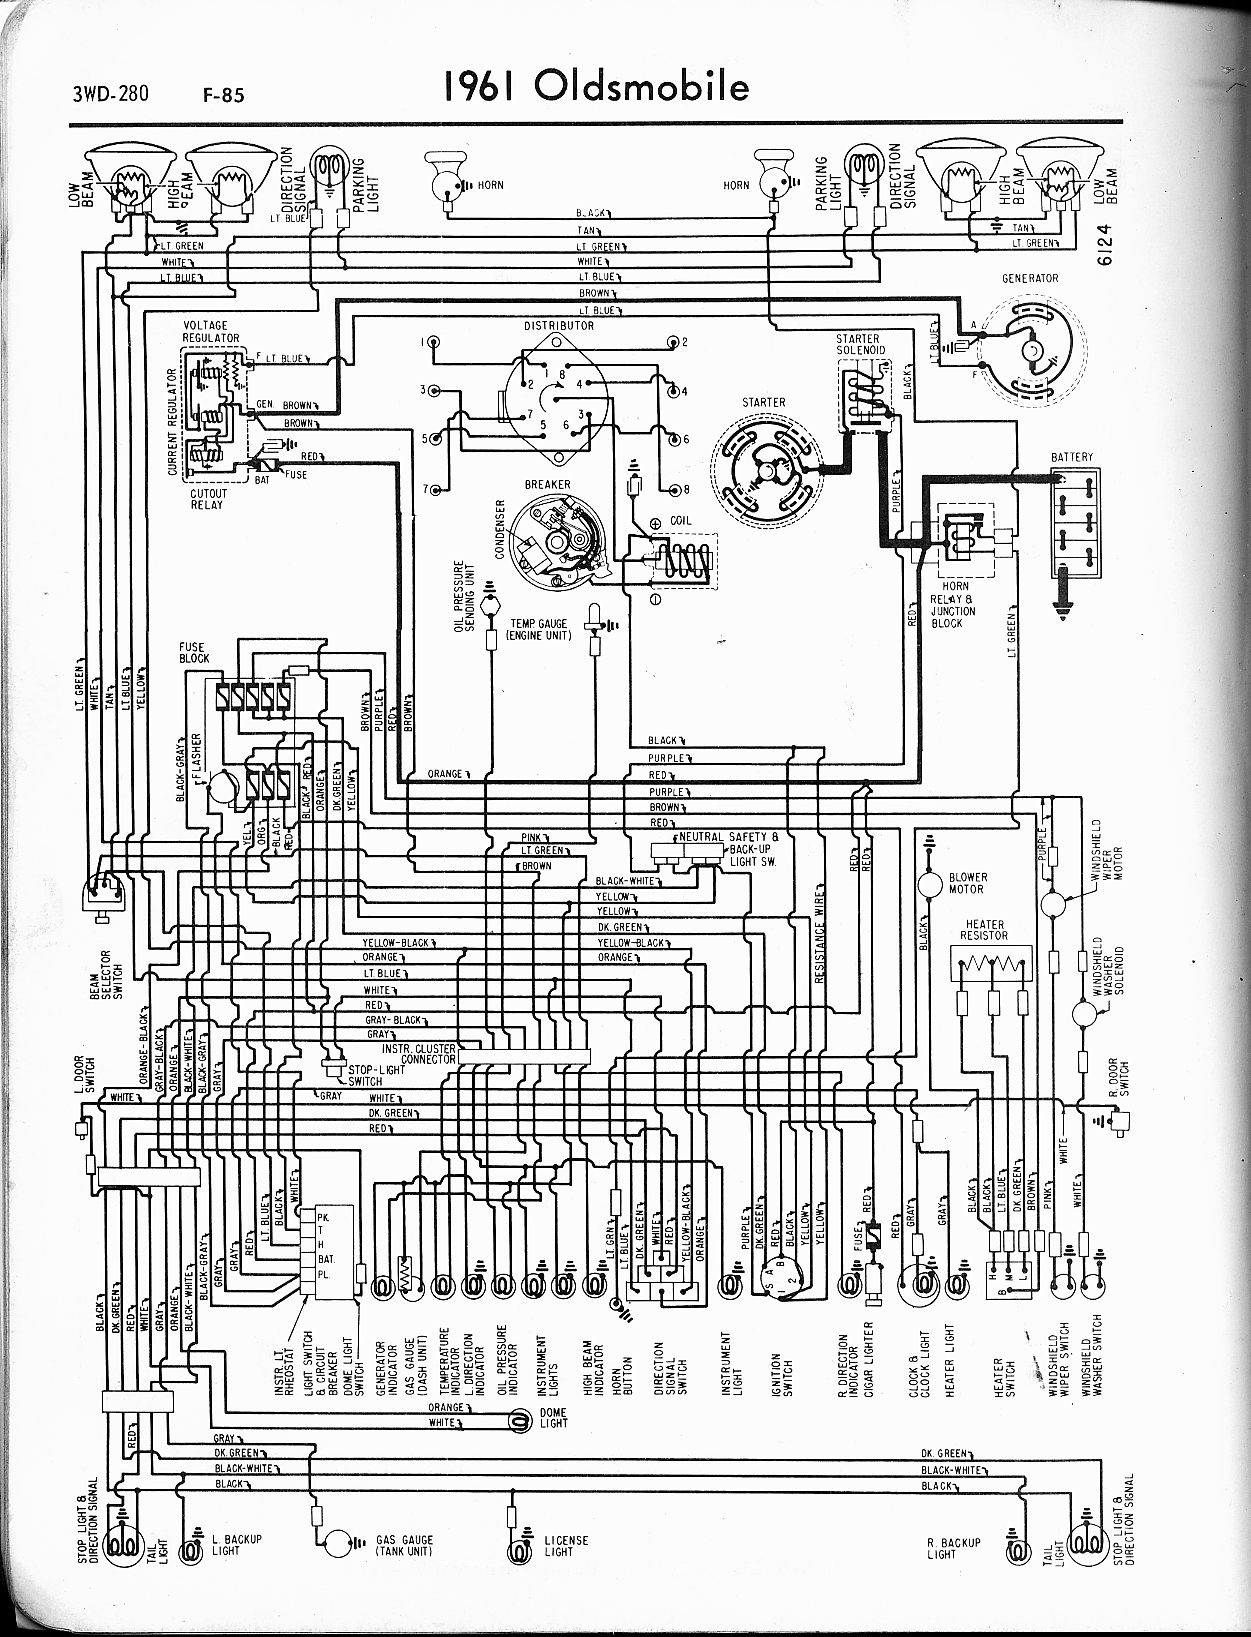 [wrg-5951] 1976 cutlass wiring diagram 1973 oldsmobile cutlass wiring diagram